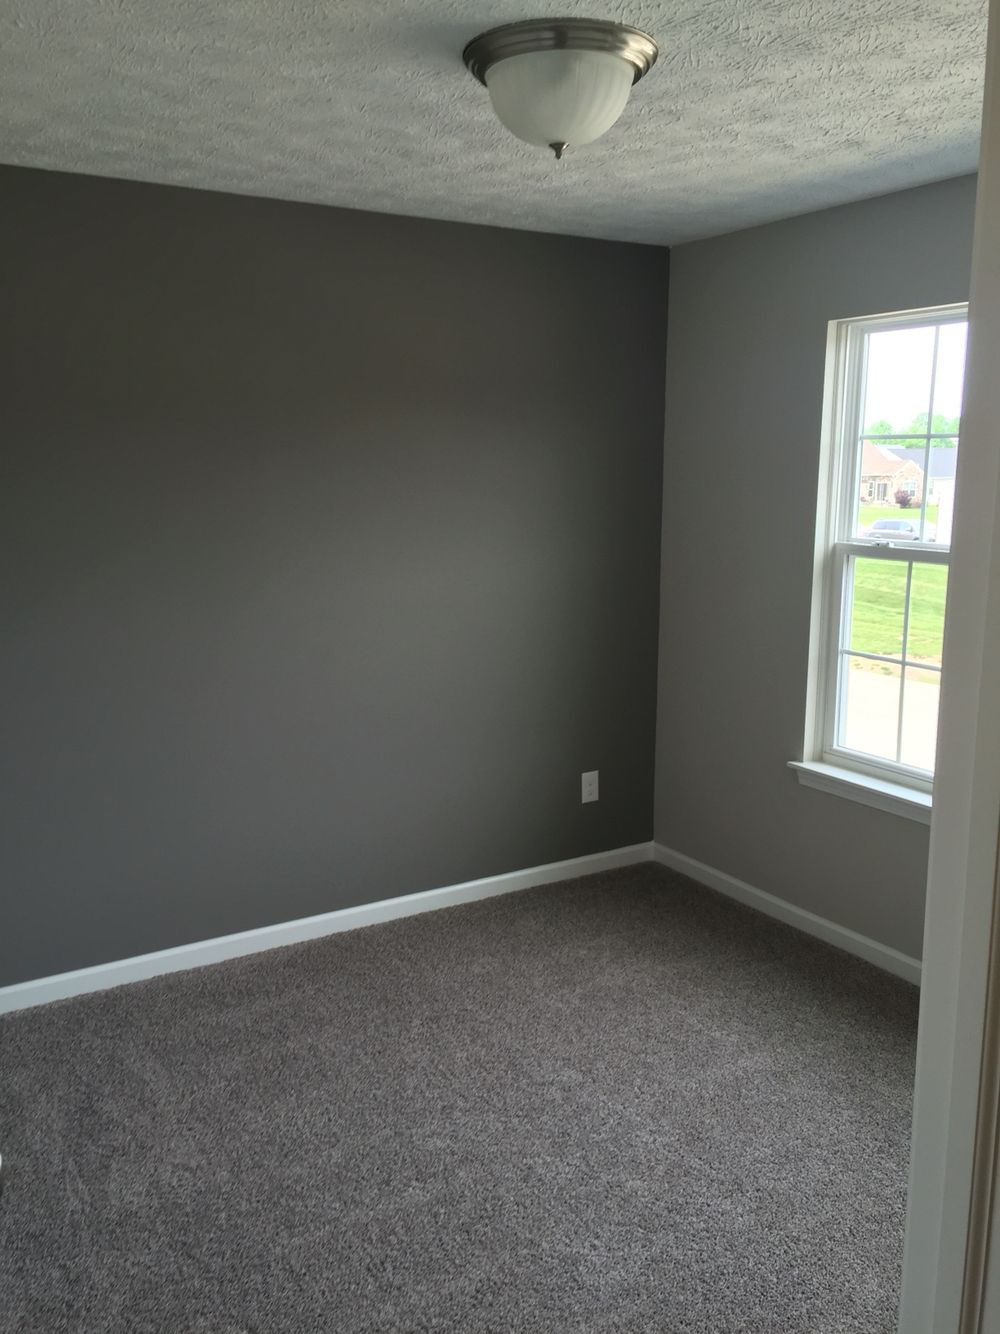 dovetail gray and agreeable gray with gray carpet | home decor